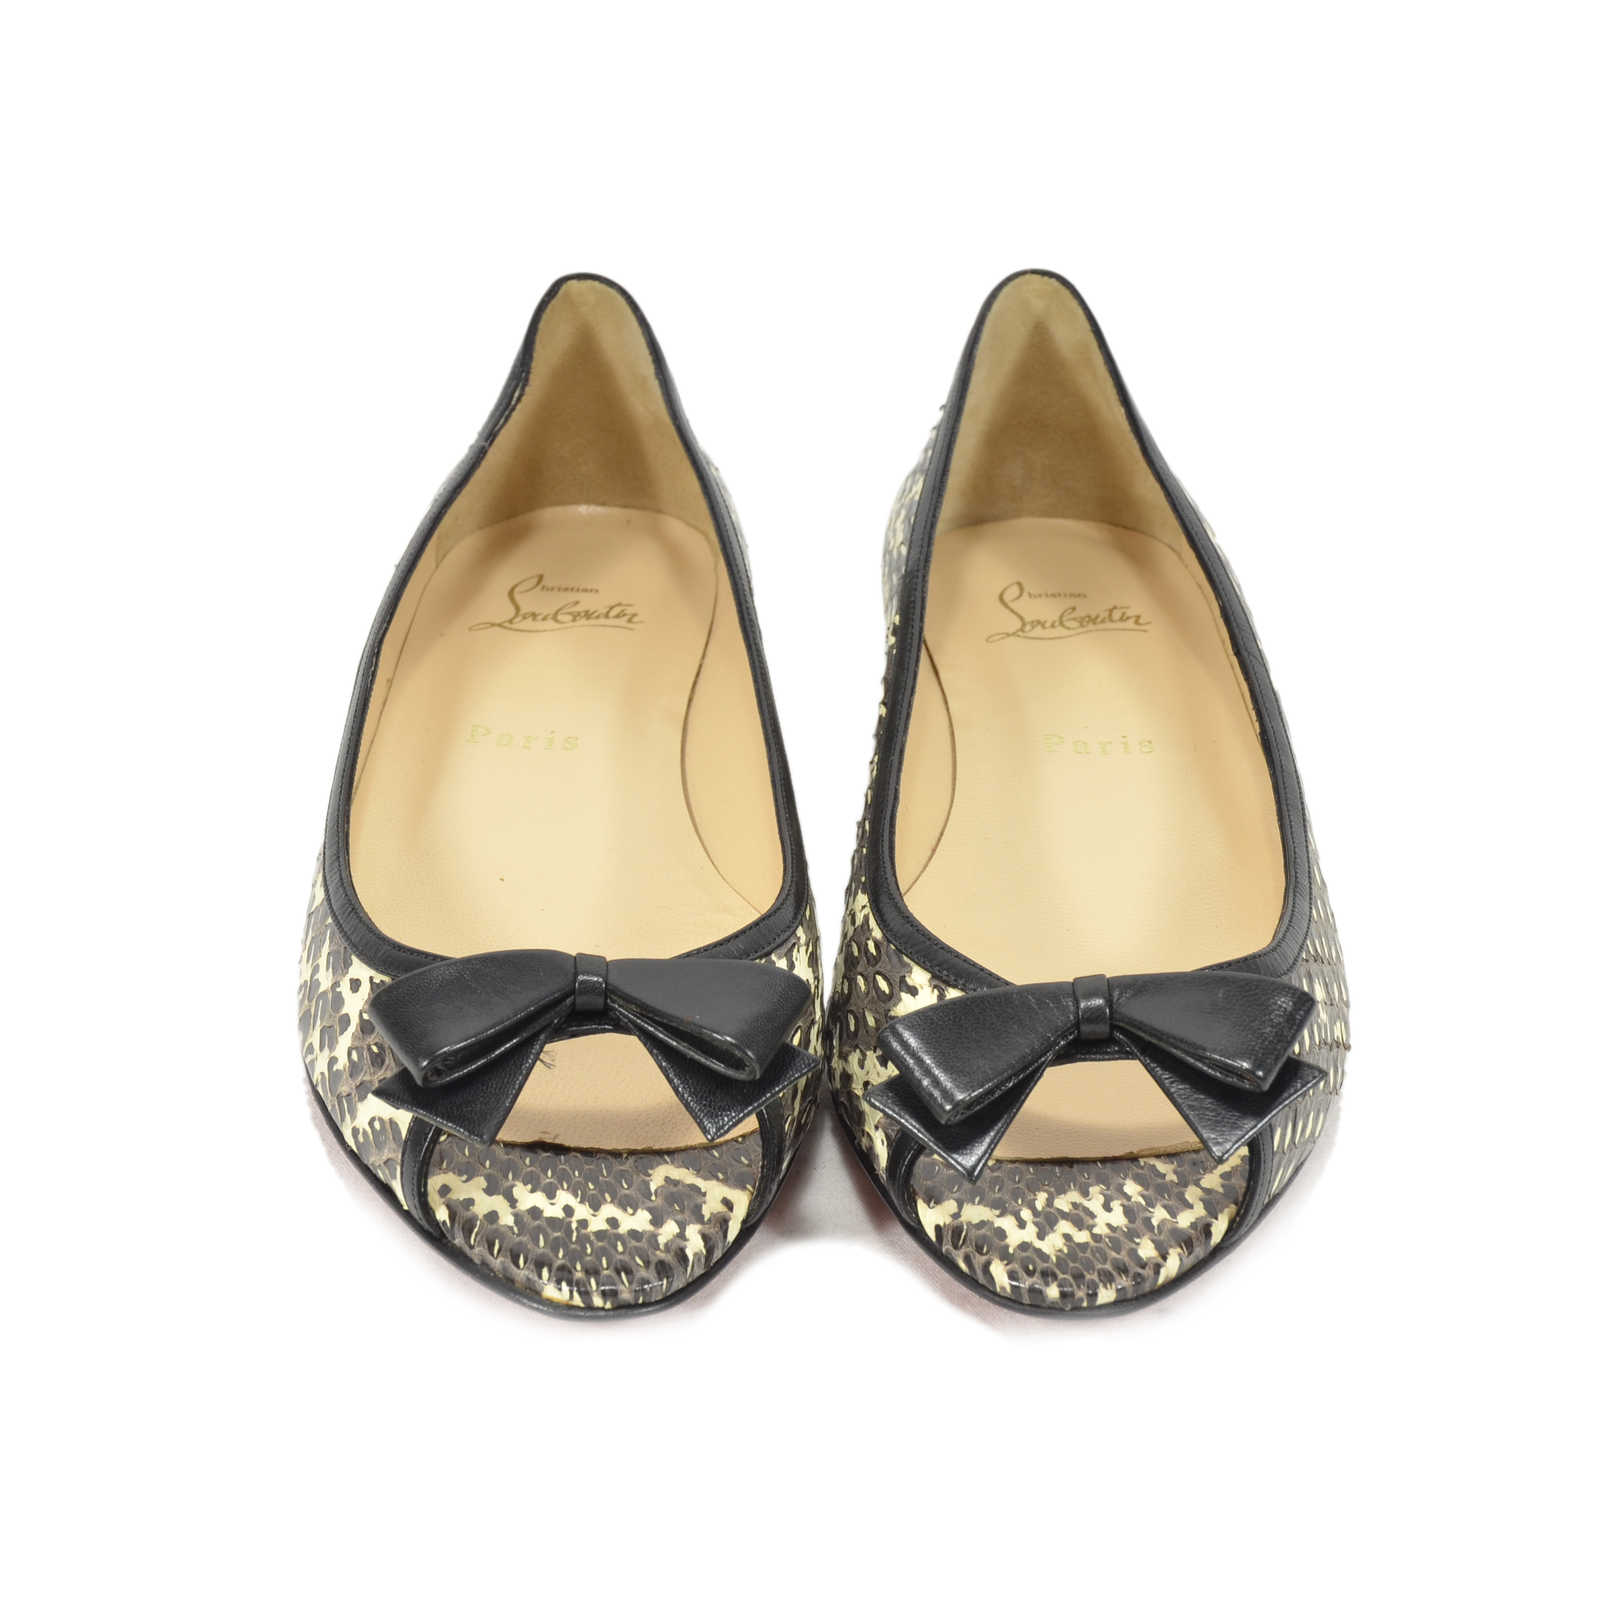 newest 3f953 97d7a Authentic Second Hand Christian Louboutin Python Peep Toe ...